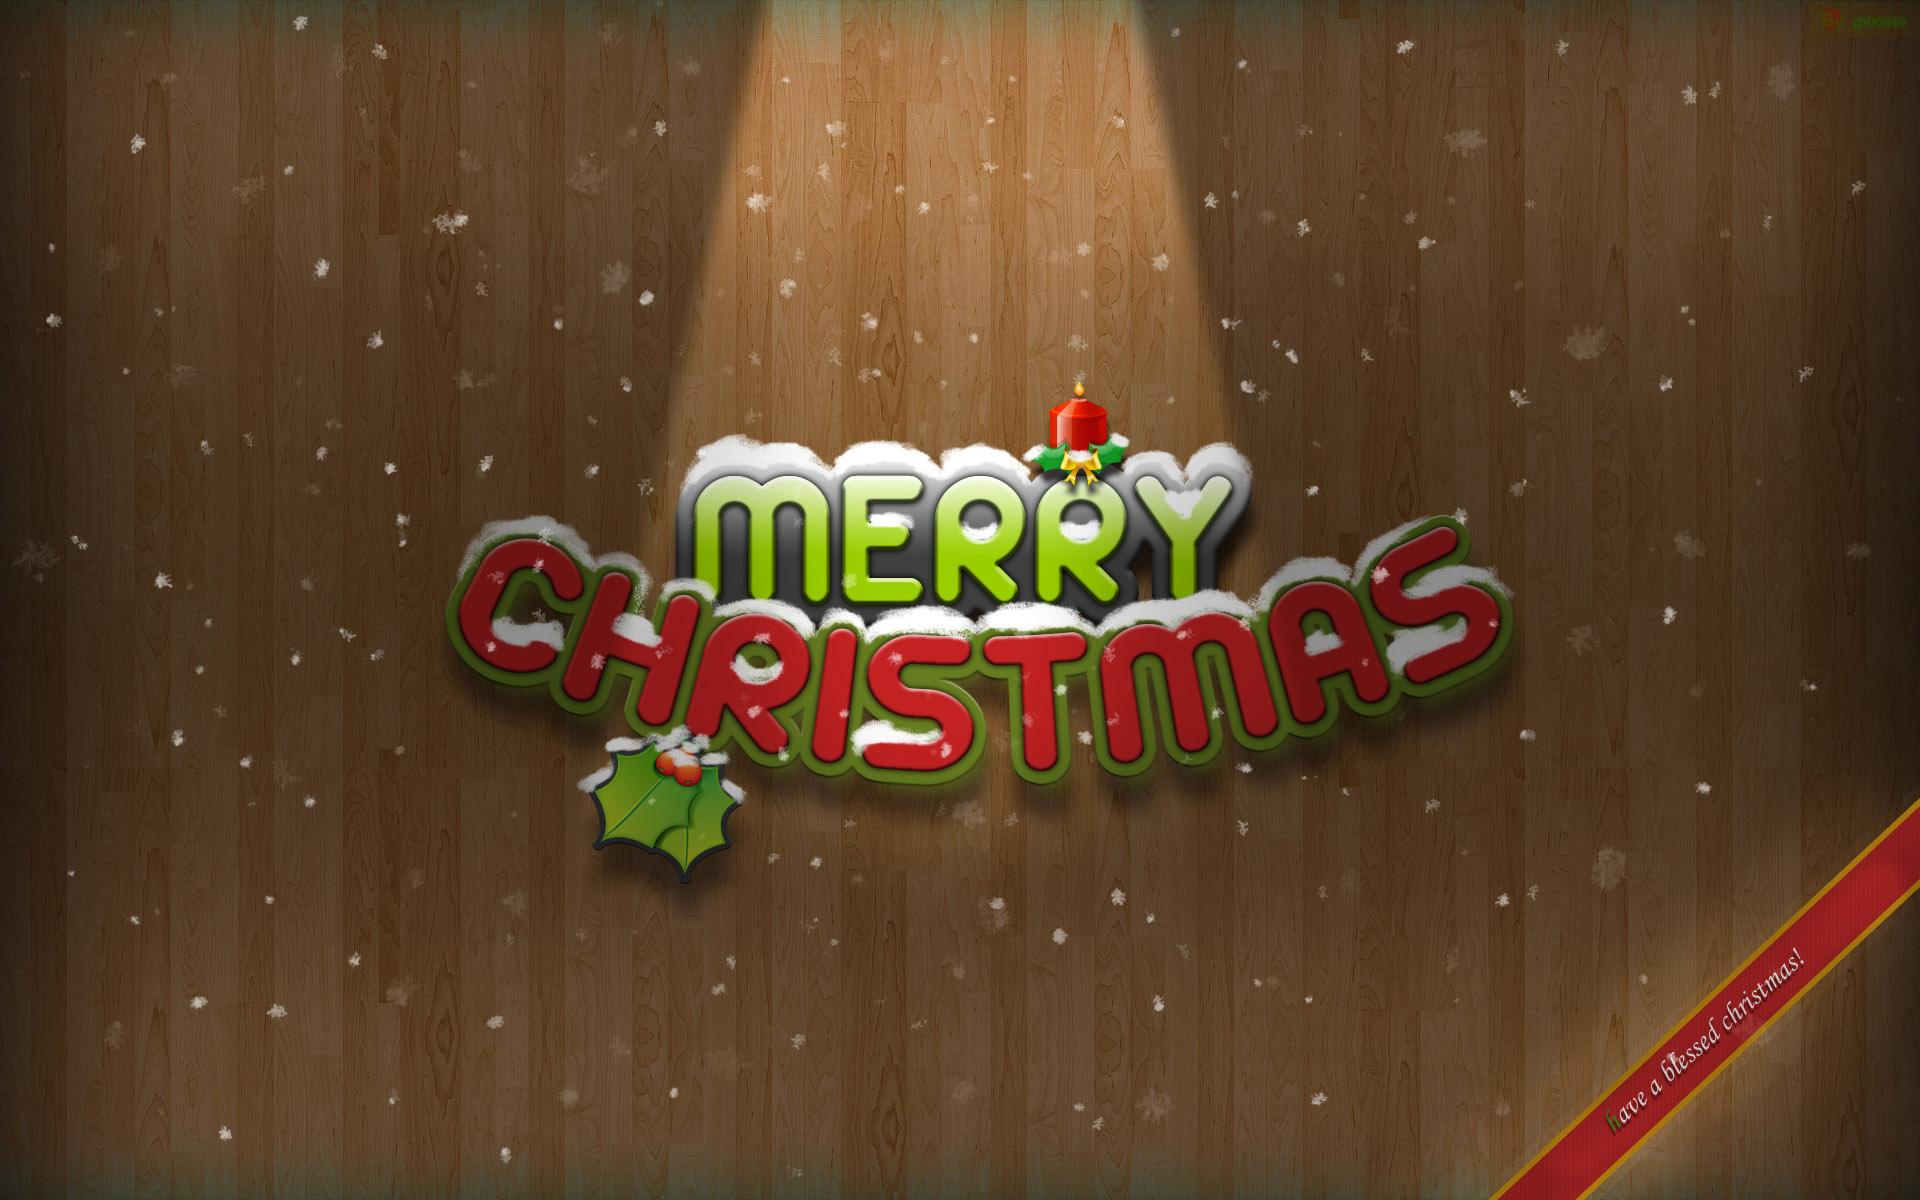 Christmas wallpaper high definition 27067